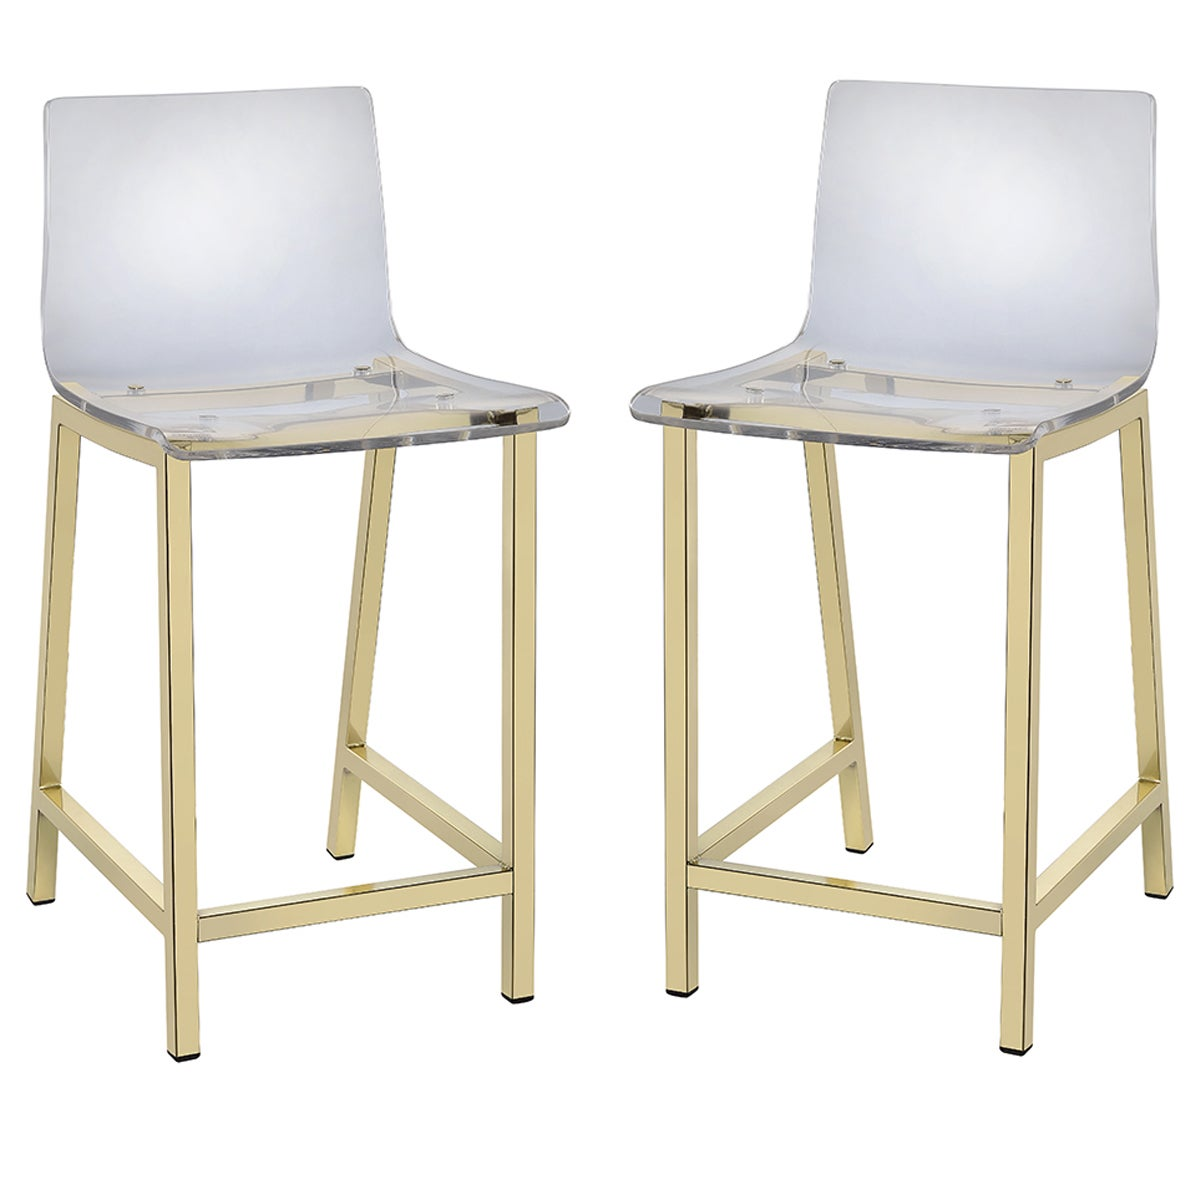 height stools and canada with as well adjustable stenless also stool seat kitchen mg backrest short acrylic along counter bar steel favorite